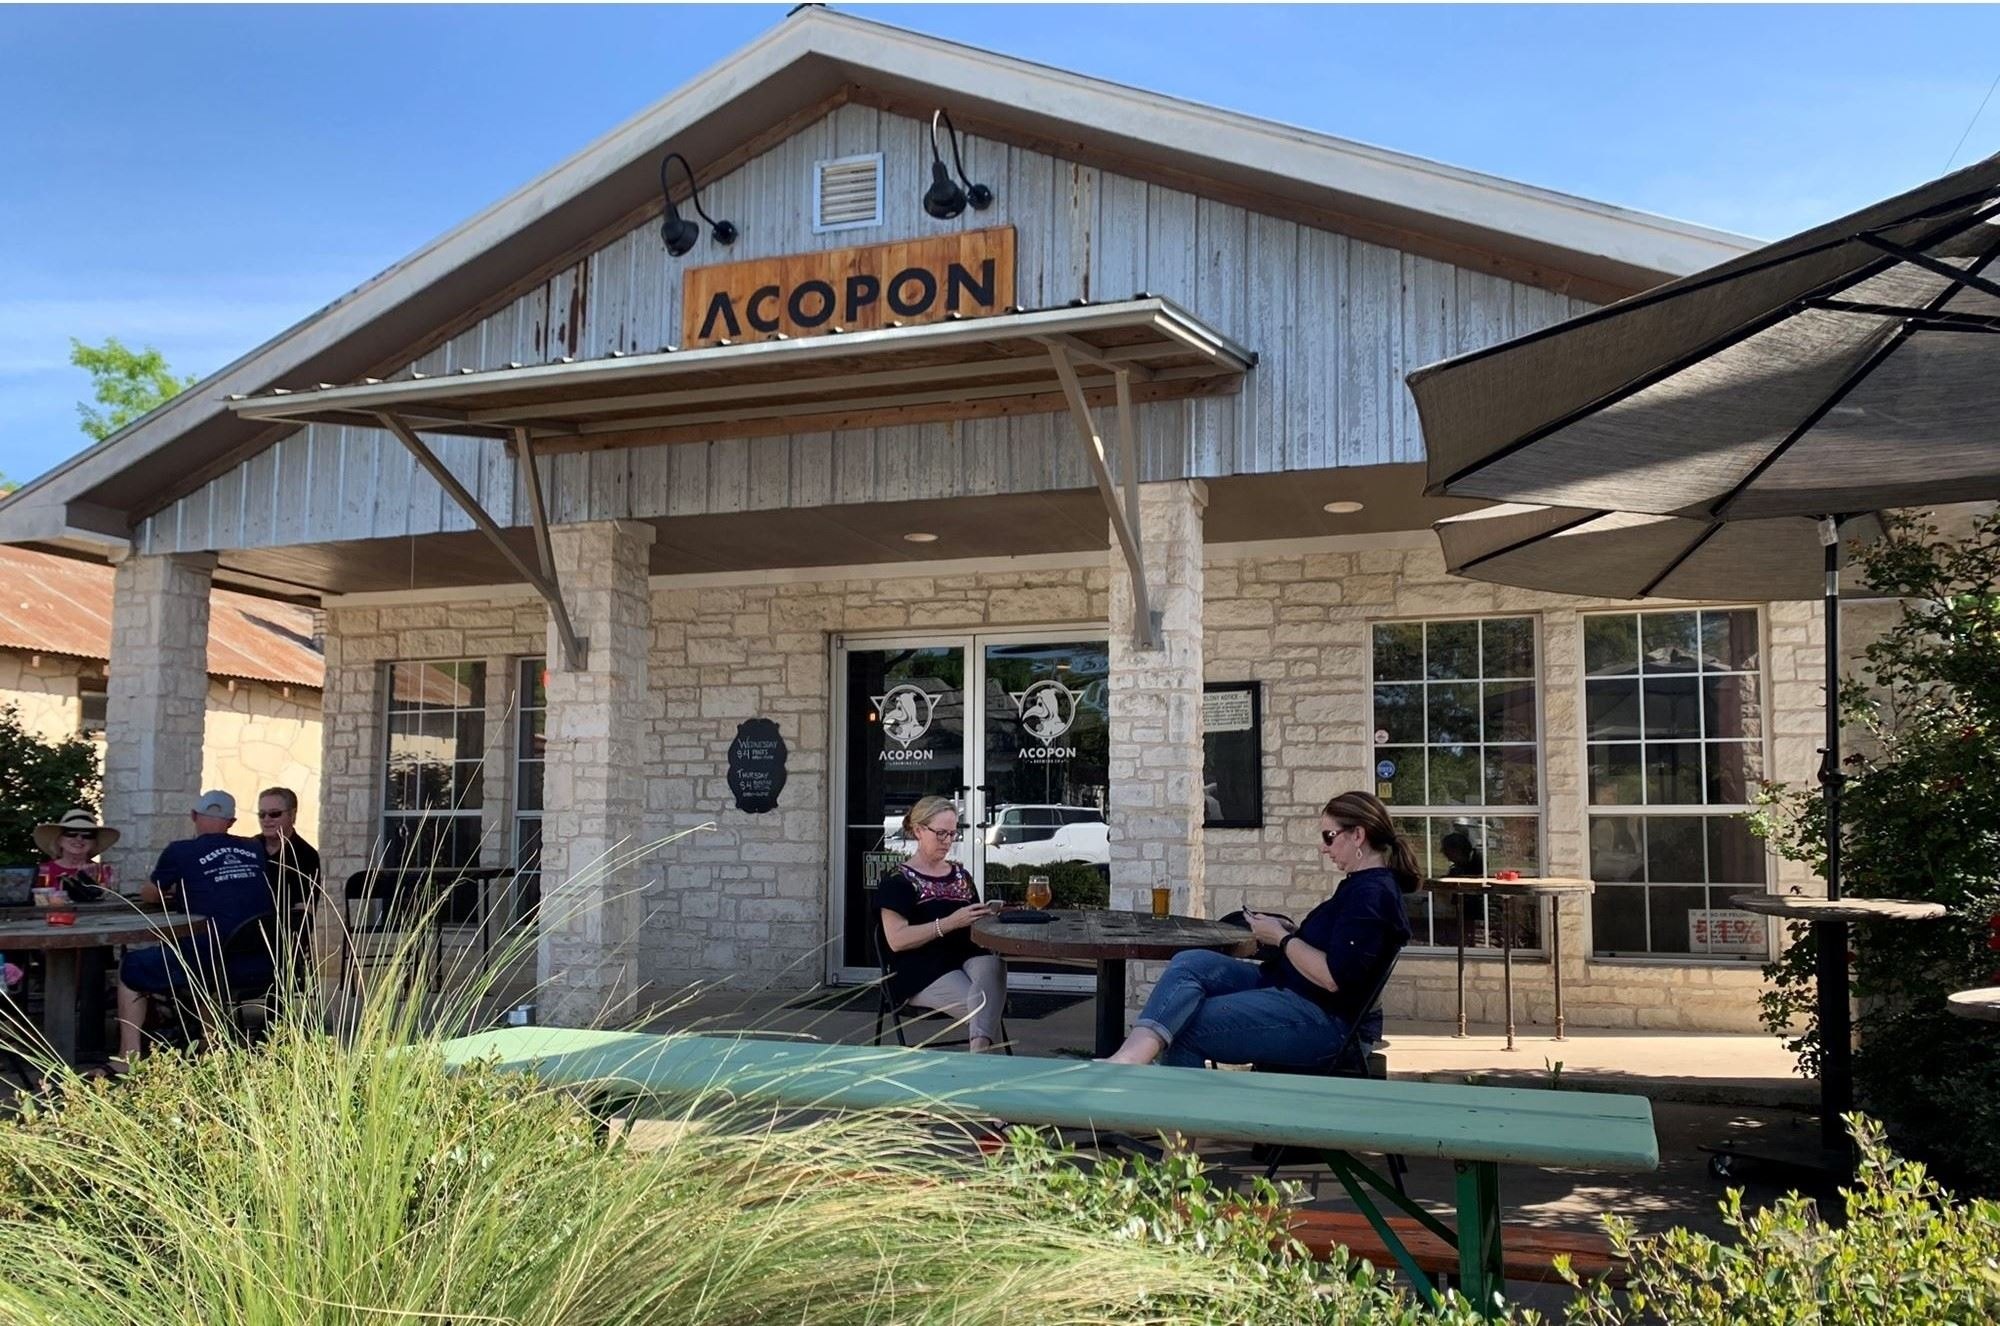 The front of Acopon brewing with a front porch with two women sitting on picnic tables enjoying a beer